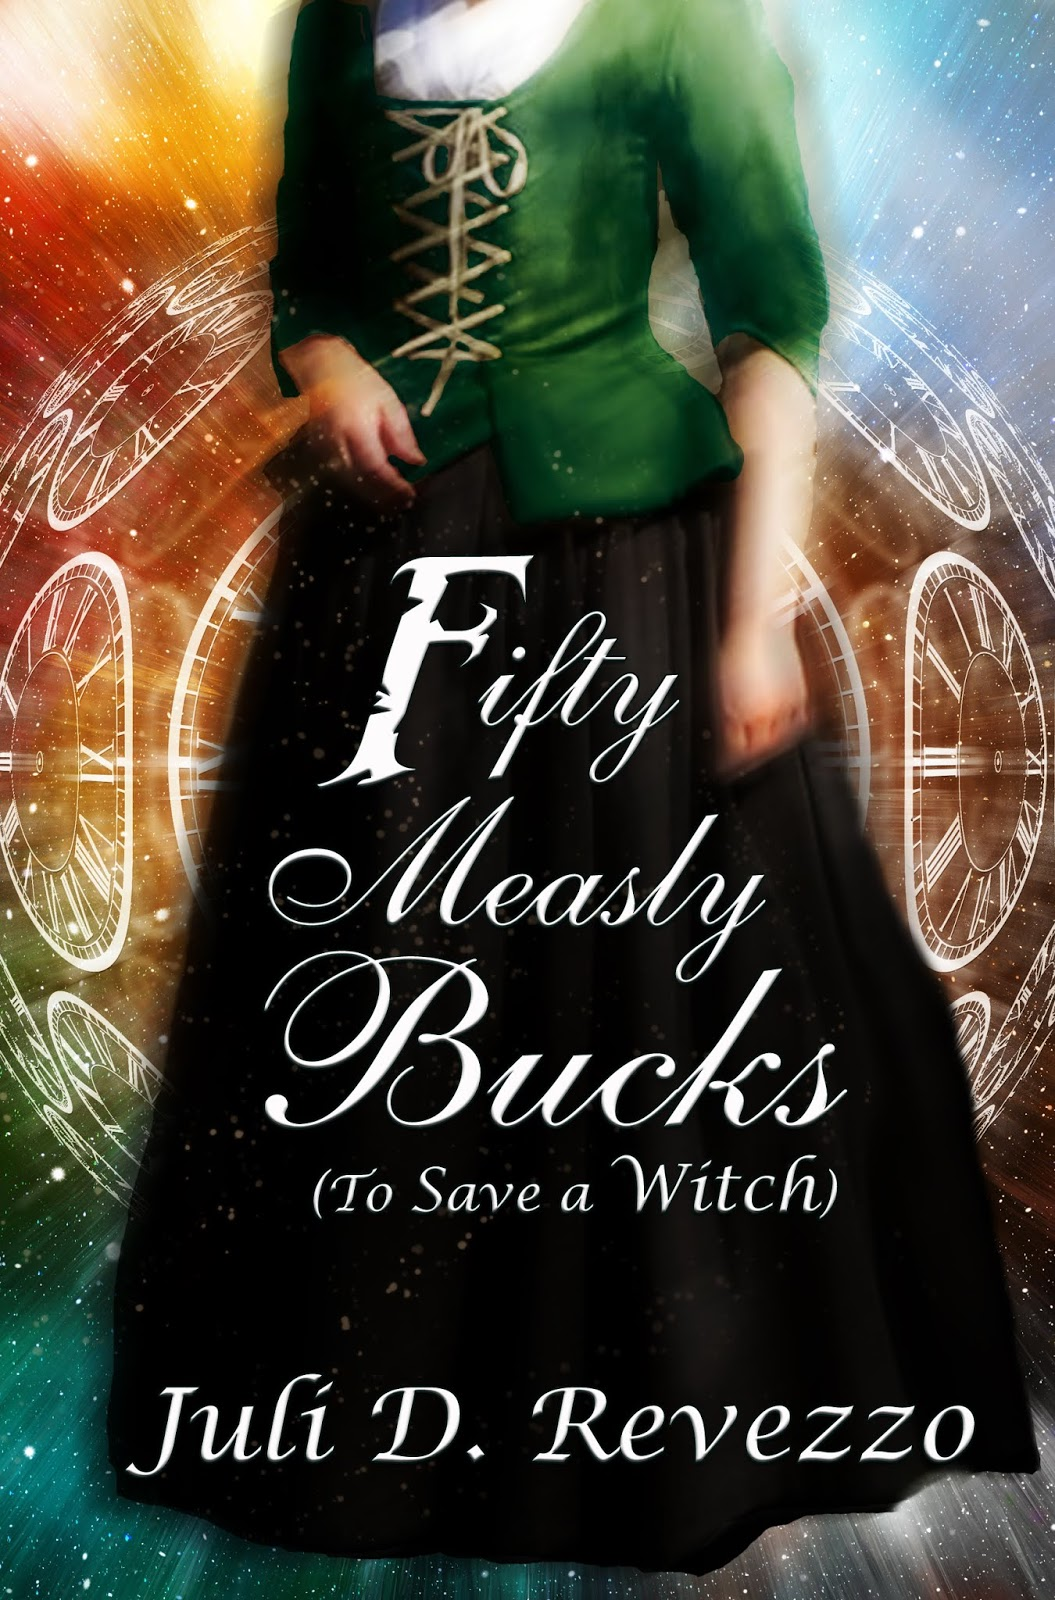 Fifty Measly Bucks (To Save A Witch) by Juli D. Revezzo, time travel, dark fantasy, suspense, Salem Witch Trials, New Adult suspense, Kindle Unlimited